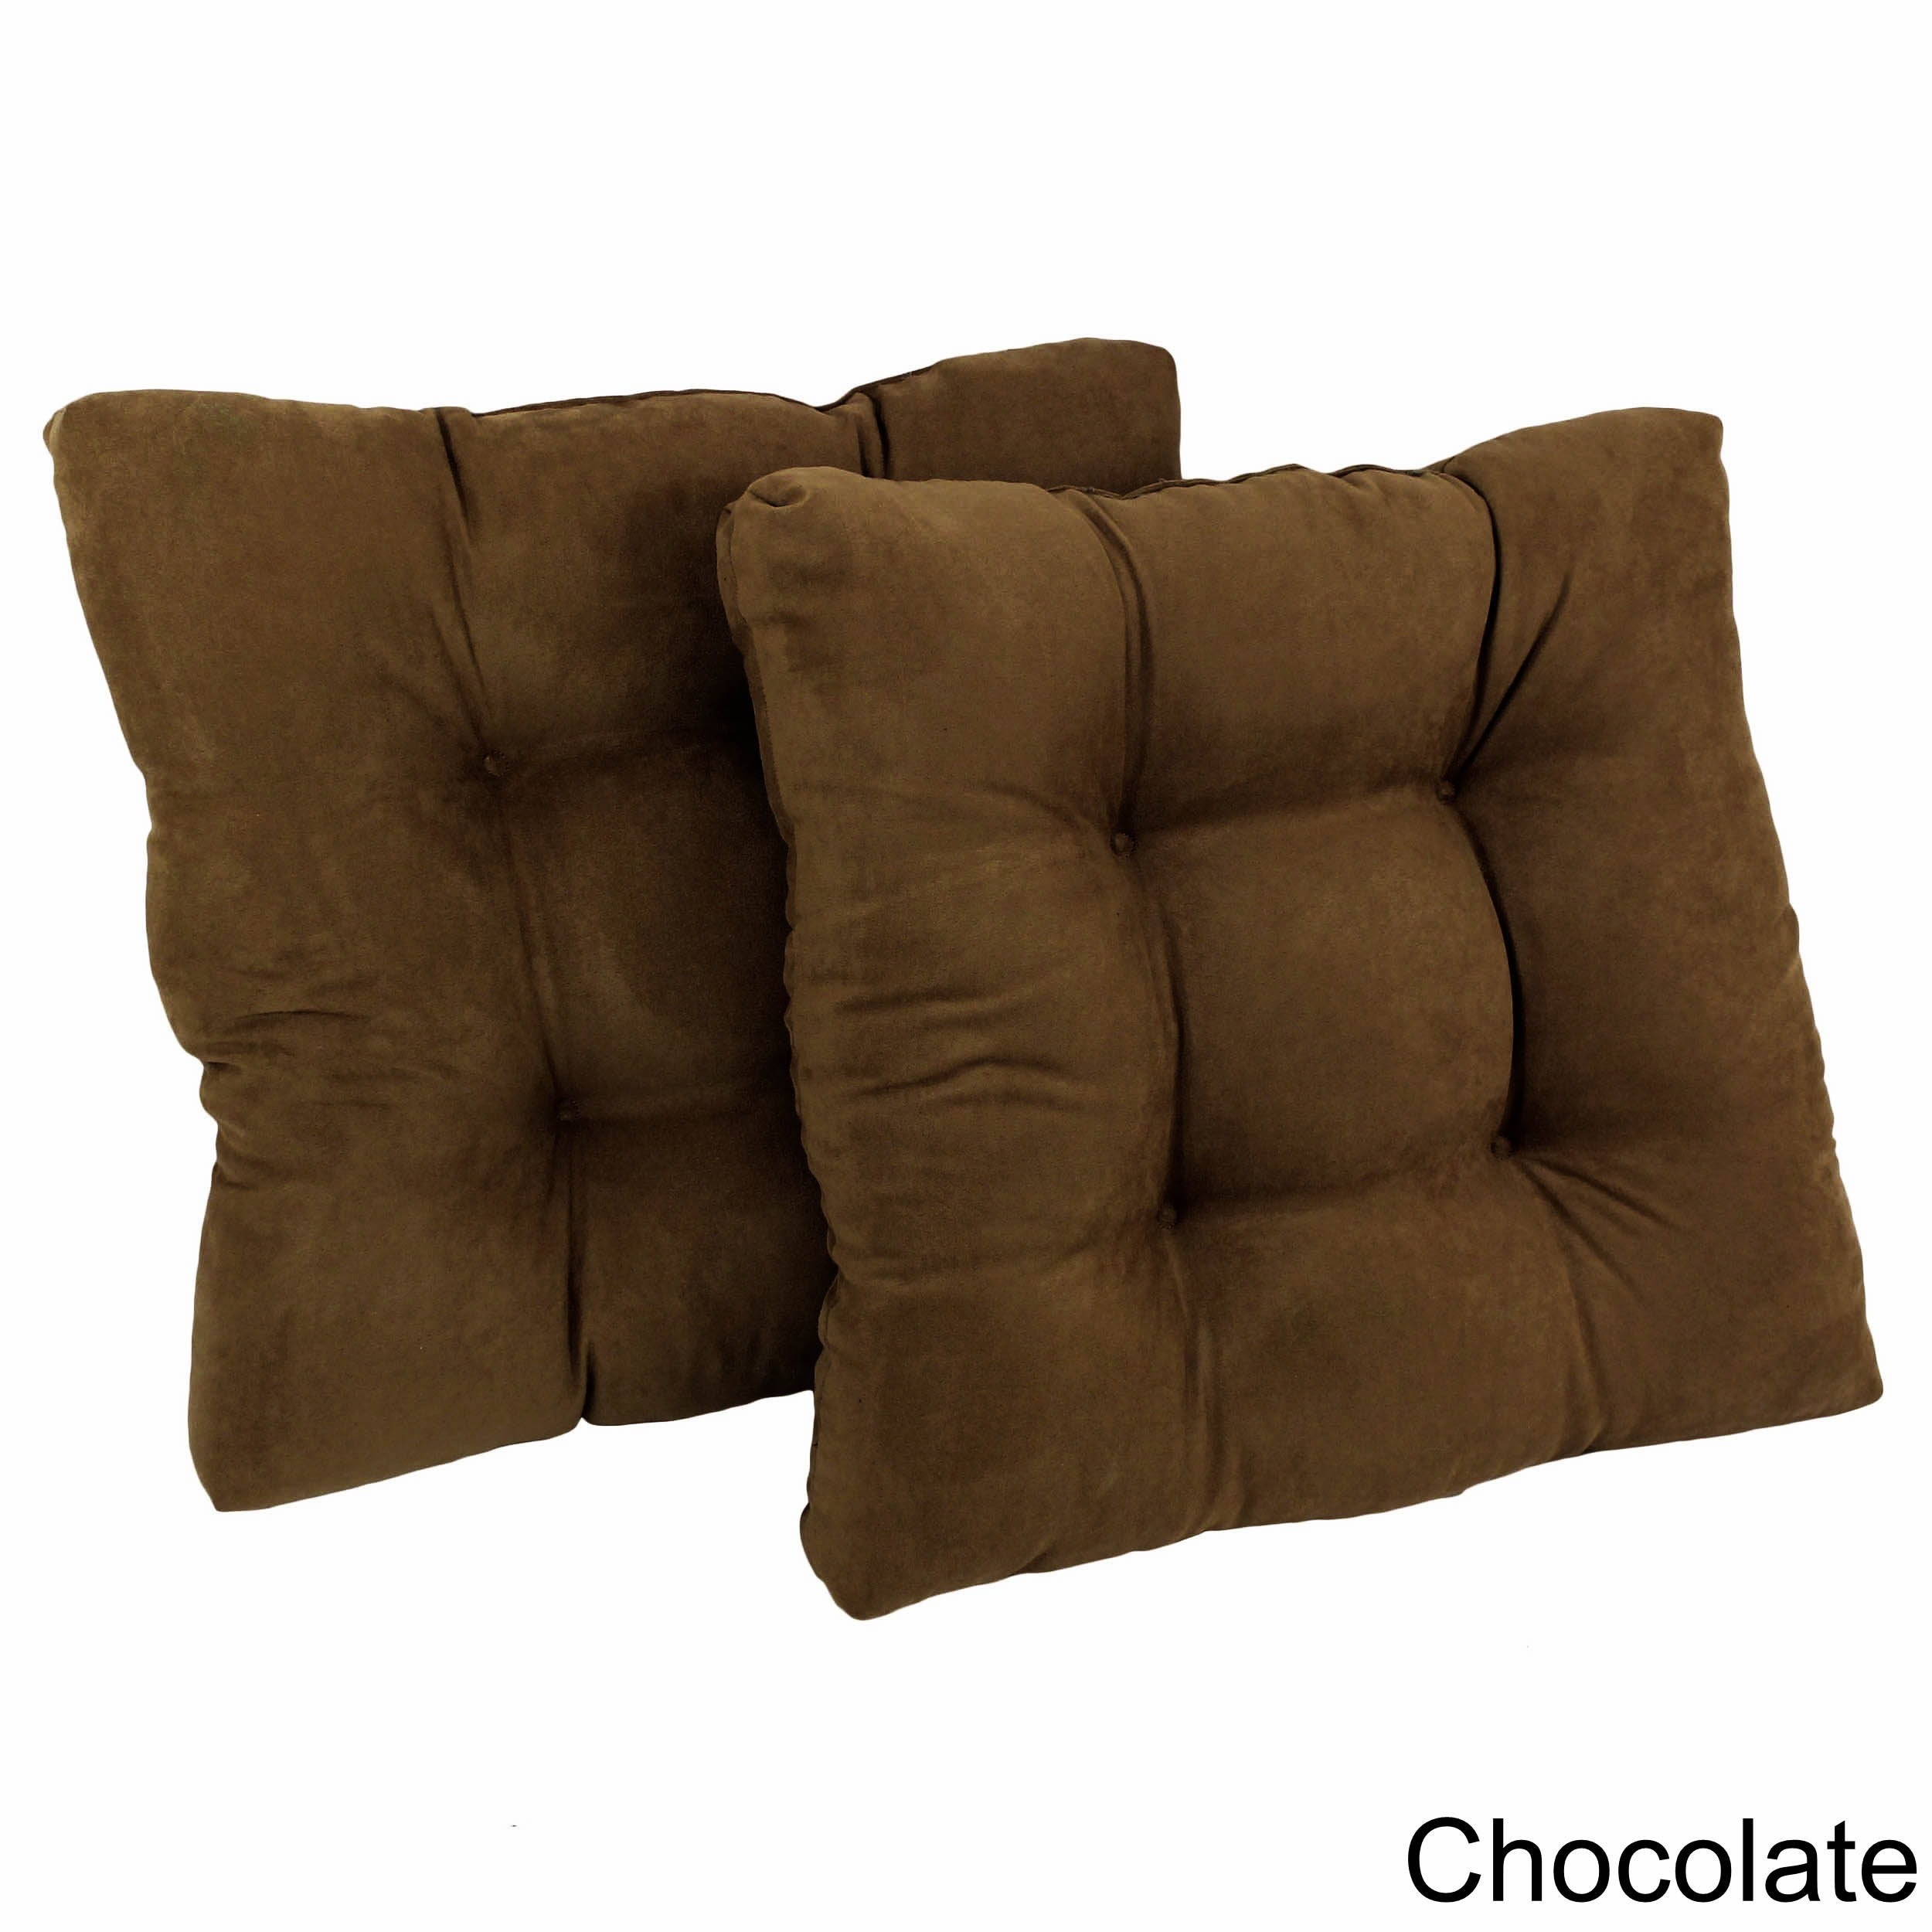 Charmant Blazing Needles Earthtone 19 Inch Square Tufted Microsuede Chair Cushions  (Set Of 2)